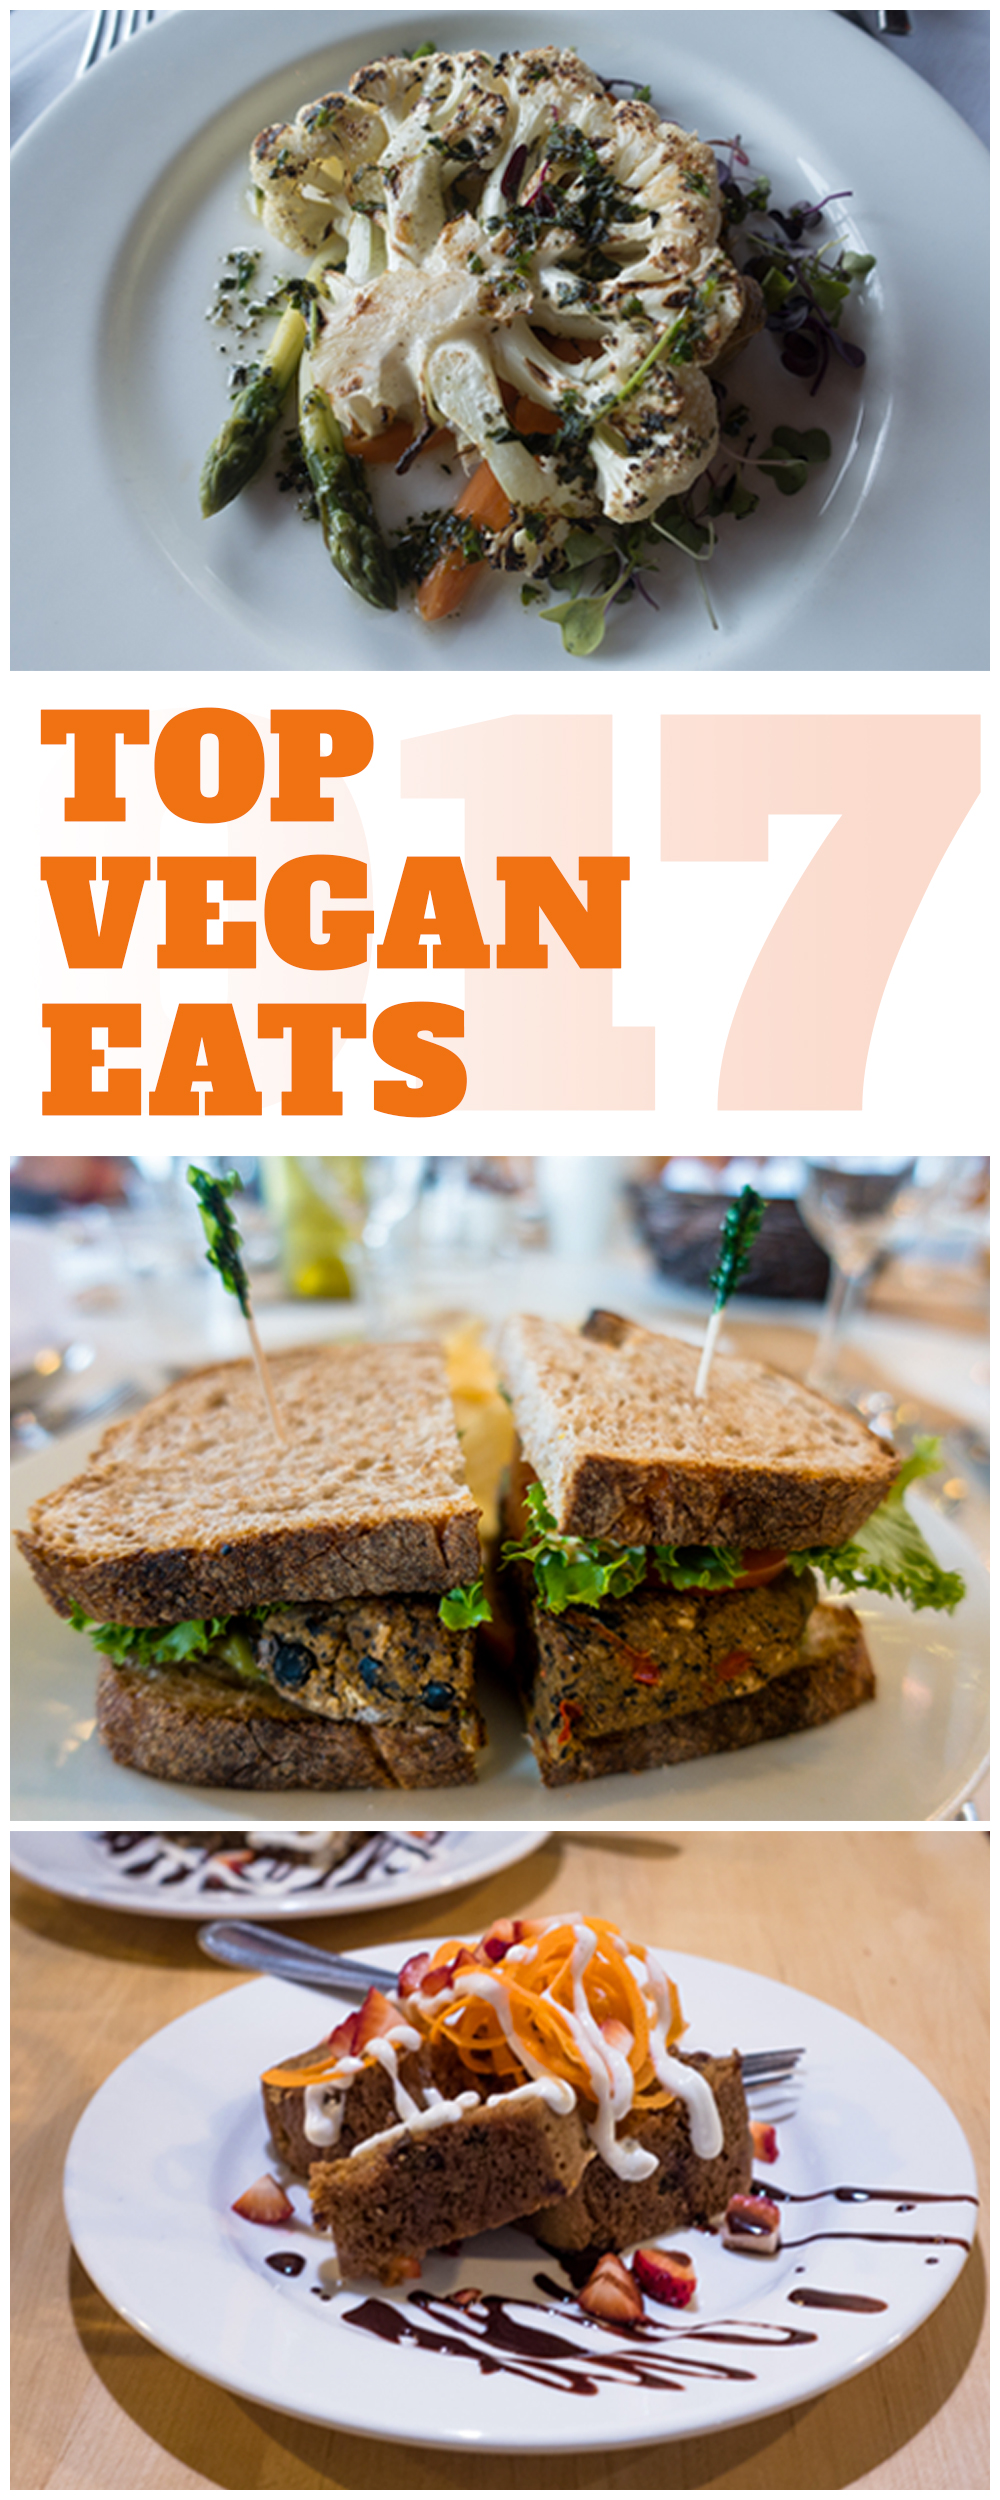 Top Vegan Eats of 2017: The best vegan eats I had while traveling this year! #vegan #travel